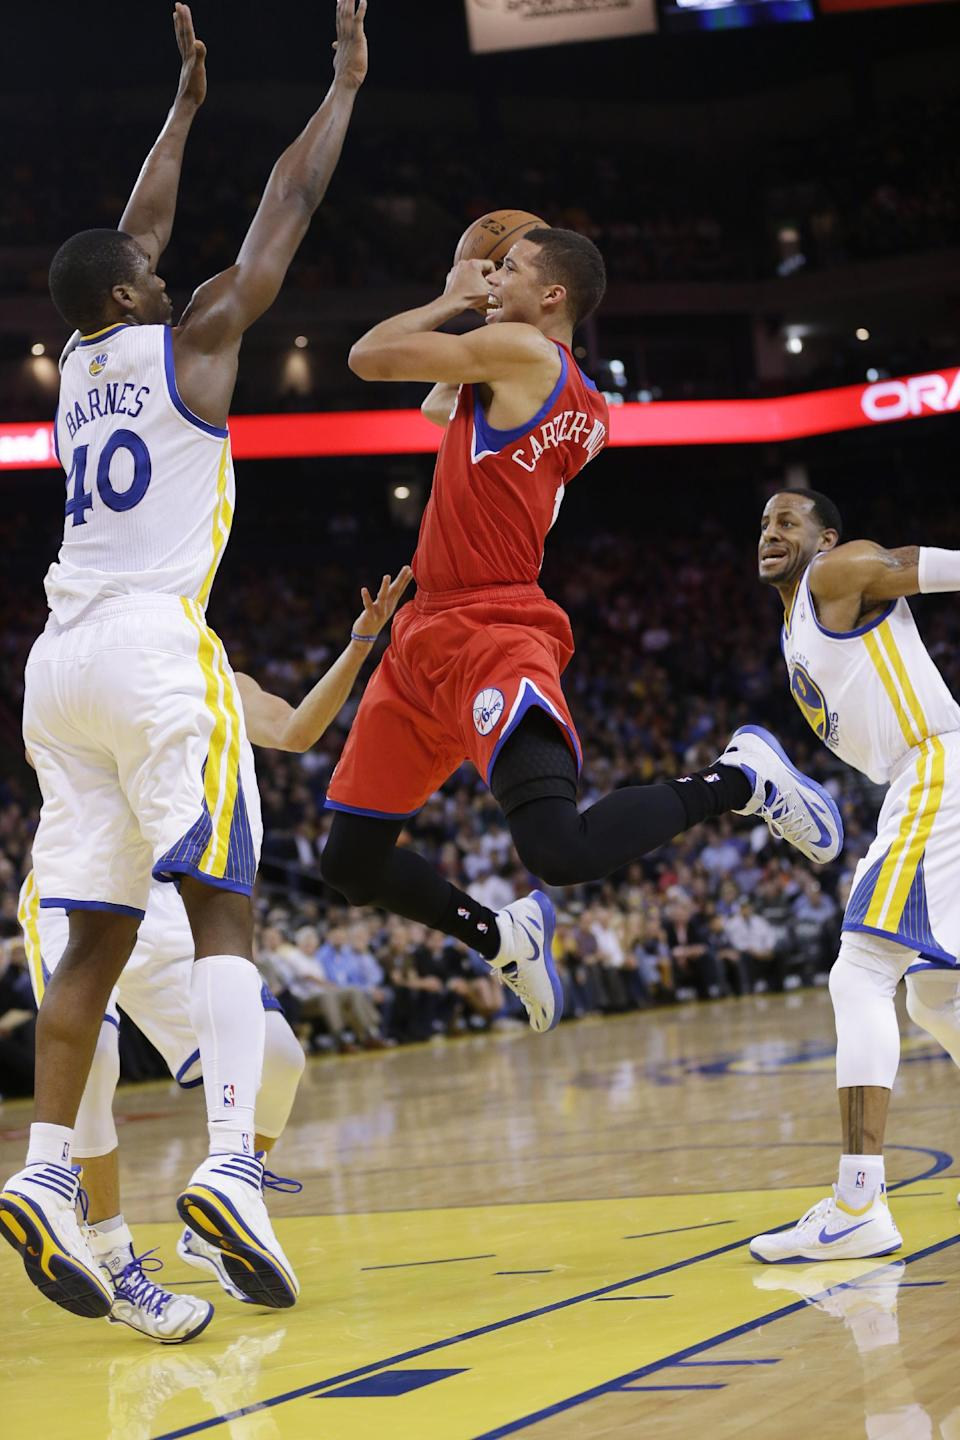 Philadelphia 76ers' Michael Carter-Williams, center, shoots between, Golden State Warriors' Harrison Barnes (40) and Andre Iguodala (9), right, during the first half of an NBA basketball game, Monday, Feb. 10, 2014, in Oakland, Calif. (AP Photo/Marcio Jose Sanchez)